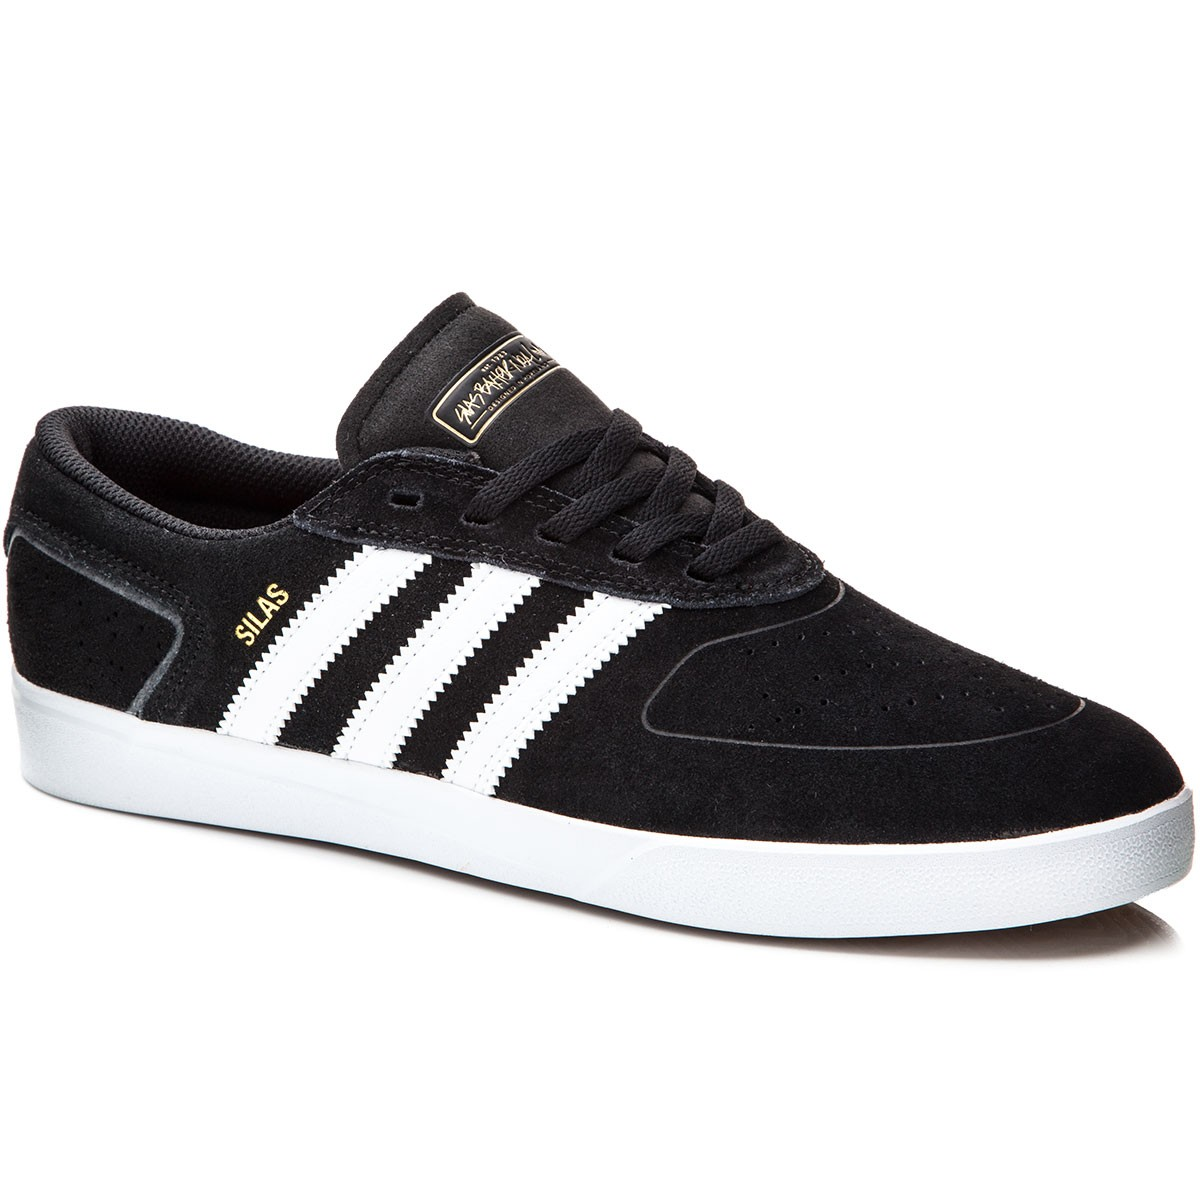 adidas silas vulc shoes - black/white/red - 6.0 PEPRZDS